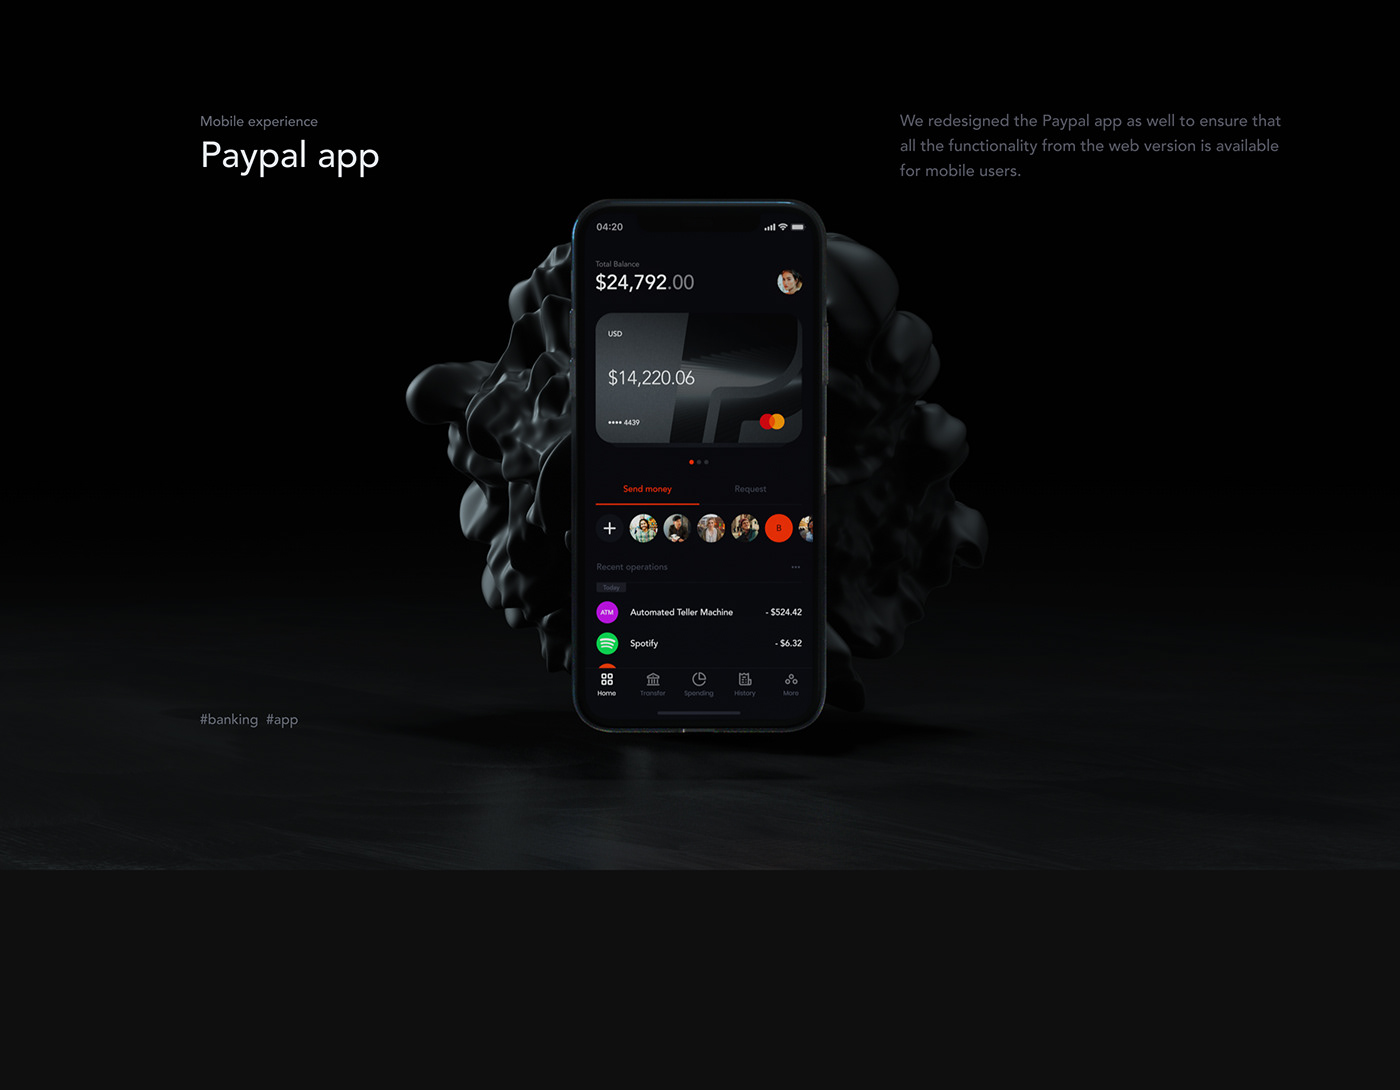 Paypal app home screen